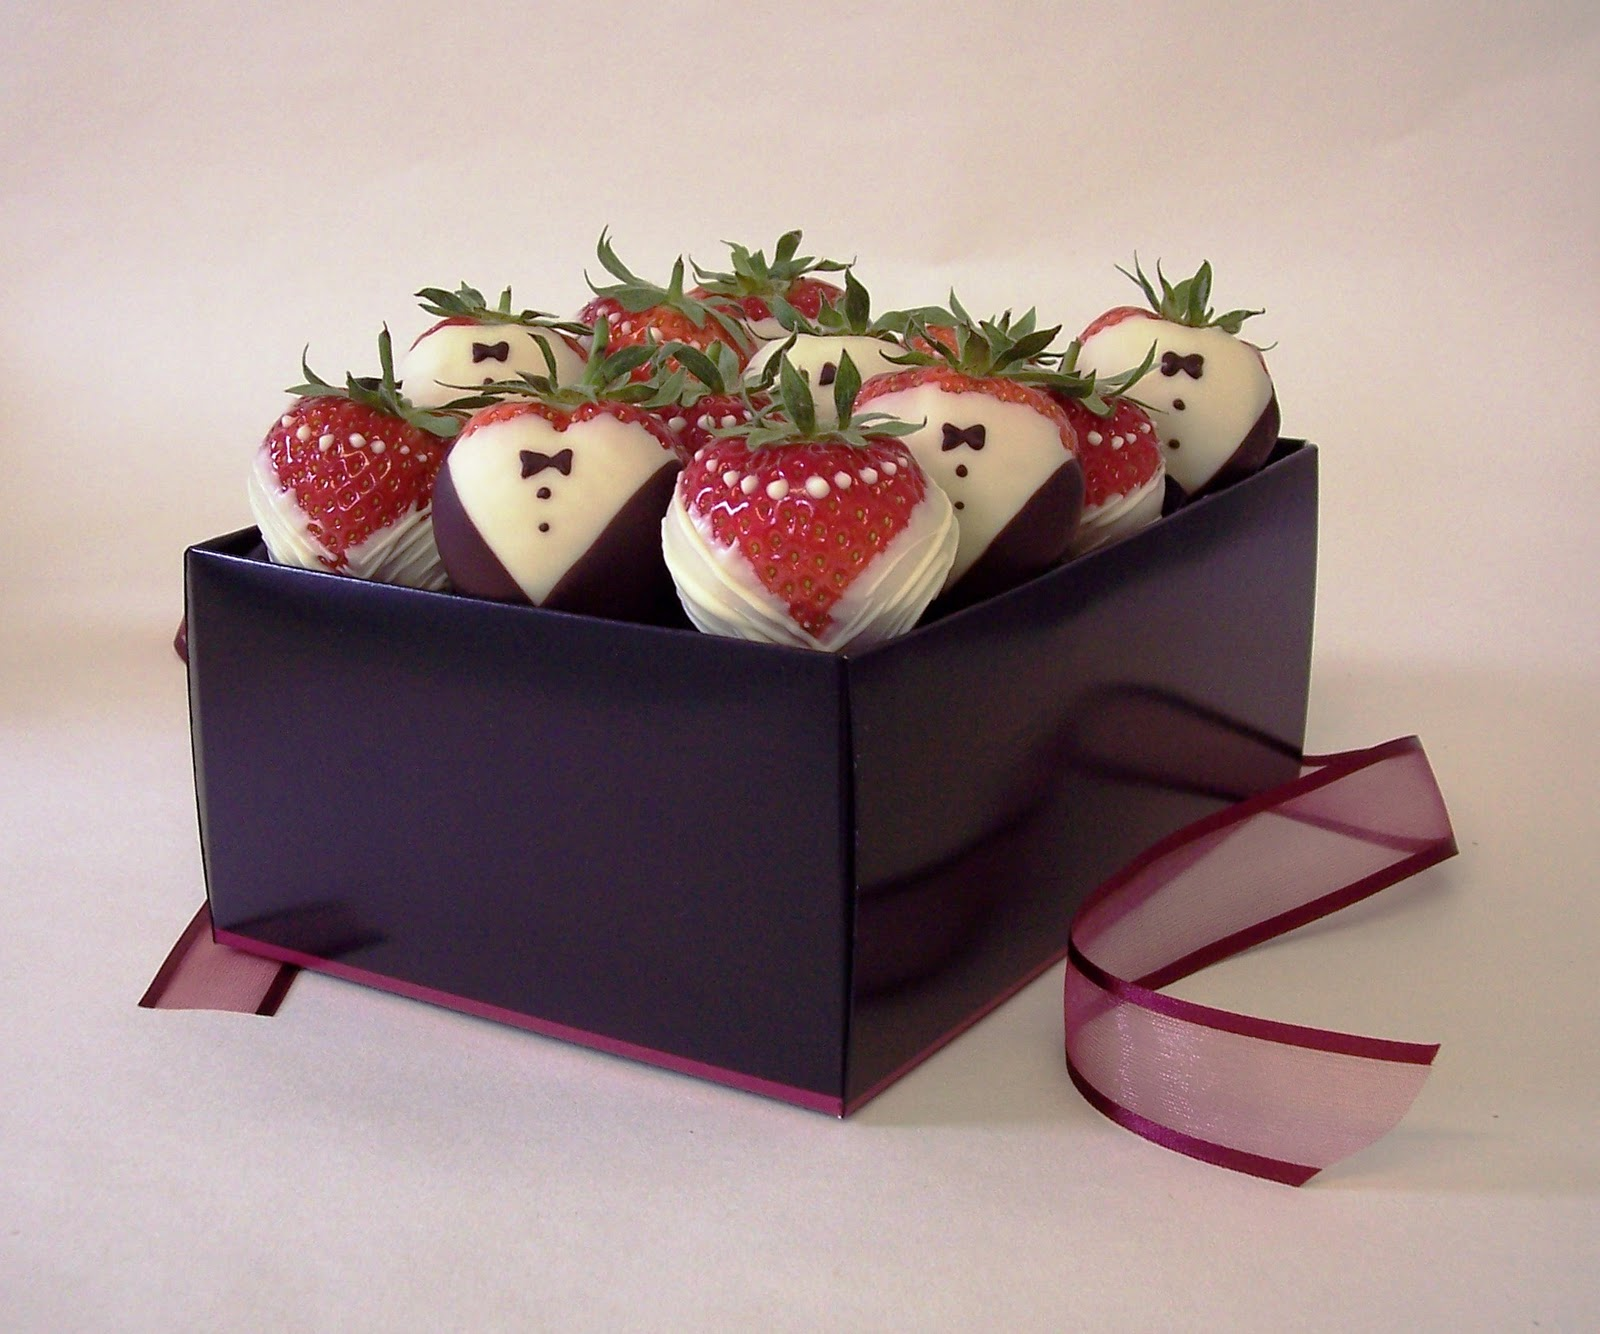 Strawberries and Chocolate Anyone?? - Asian Wedding Ideas